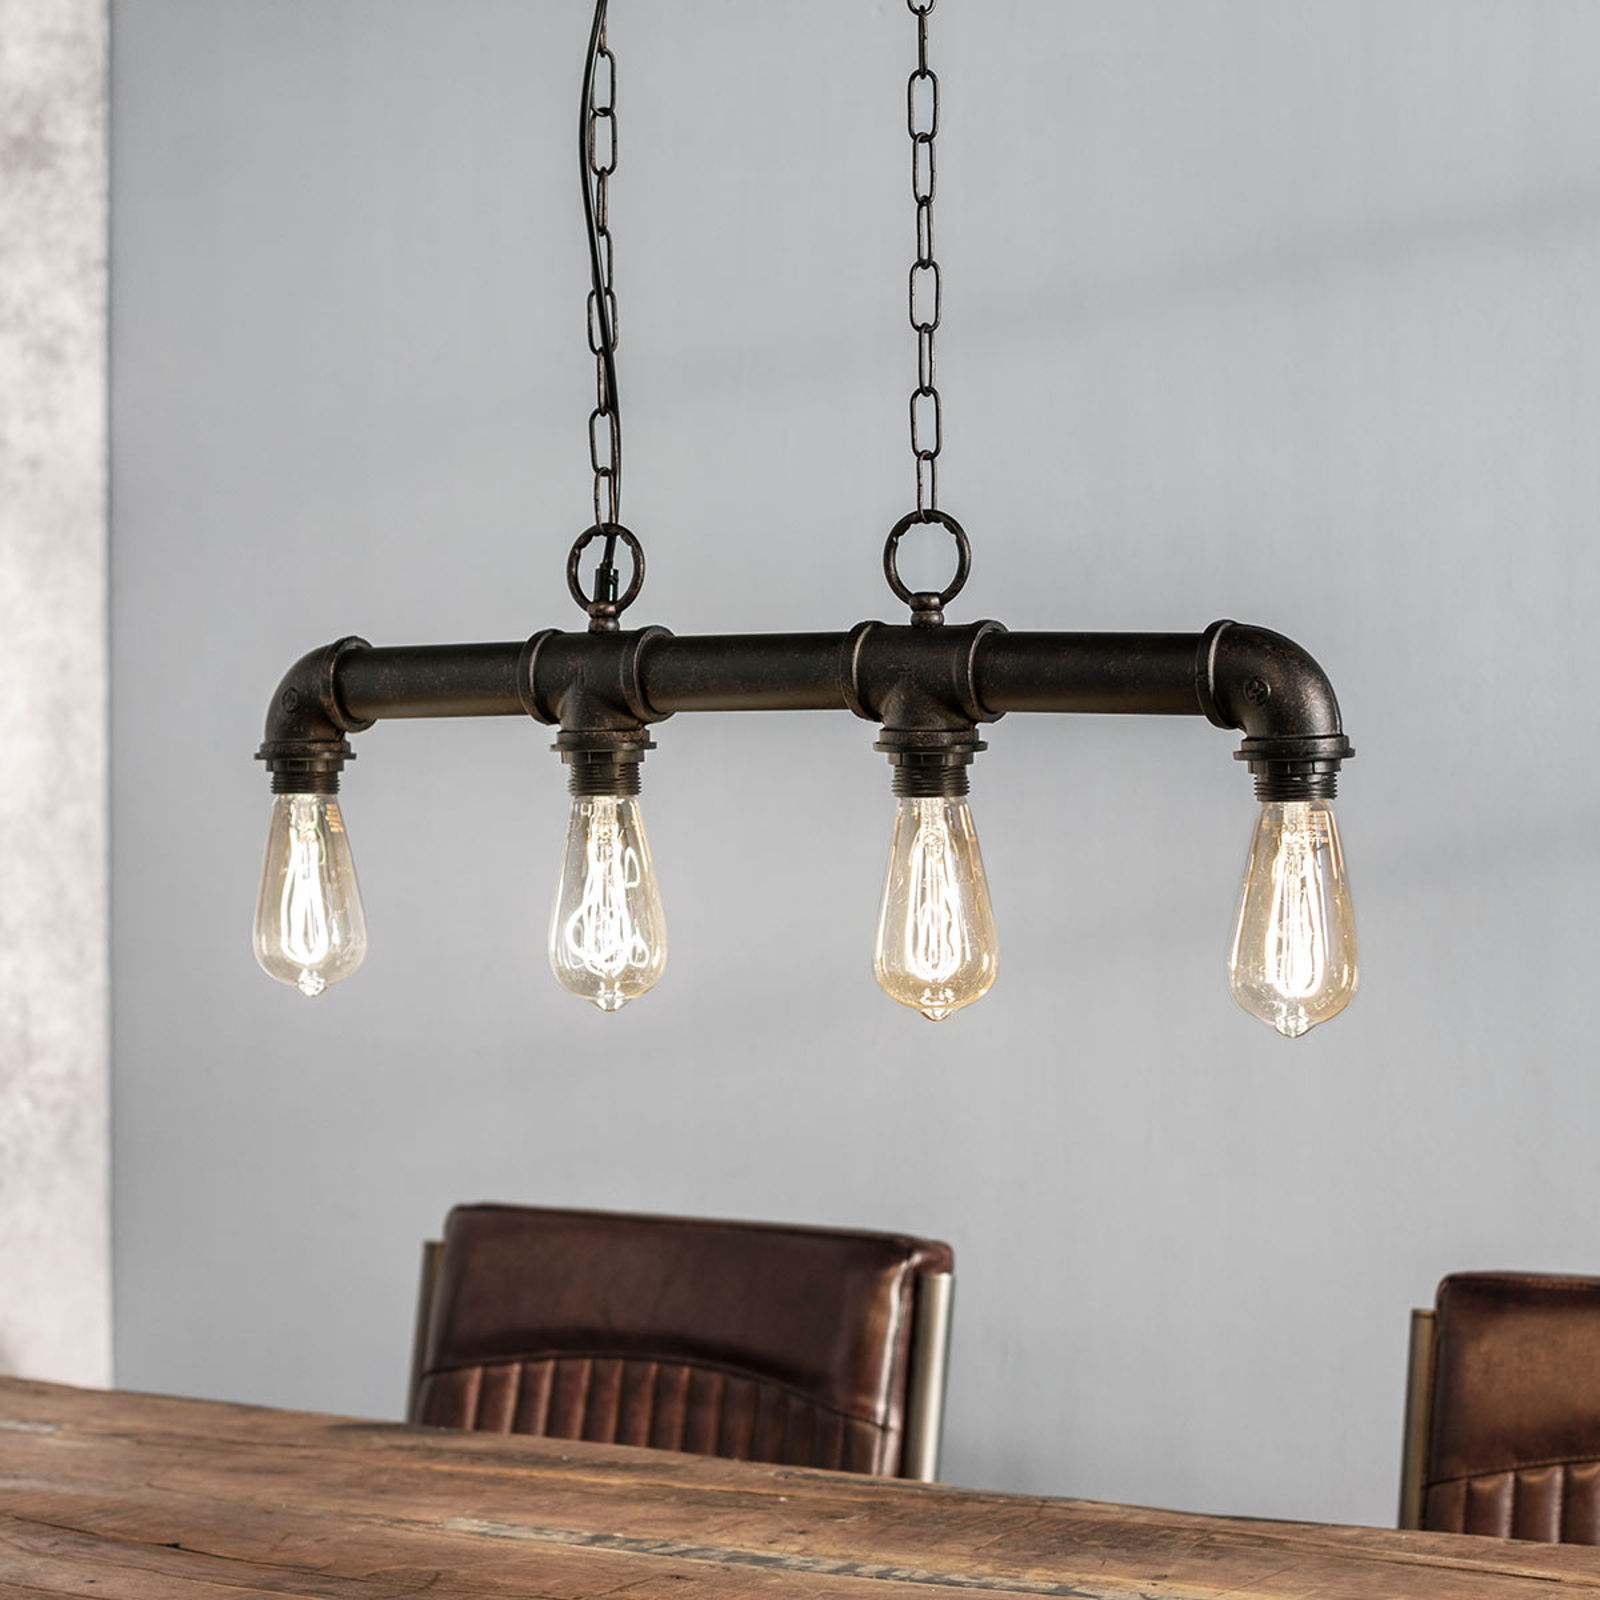 Delare four-bulb hanging light with a pipe look_4014972_1